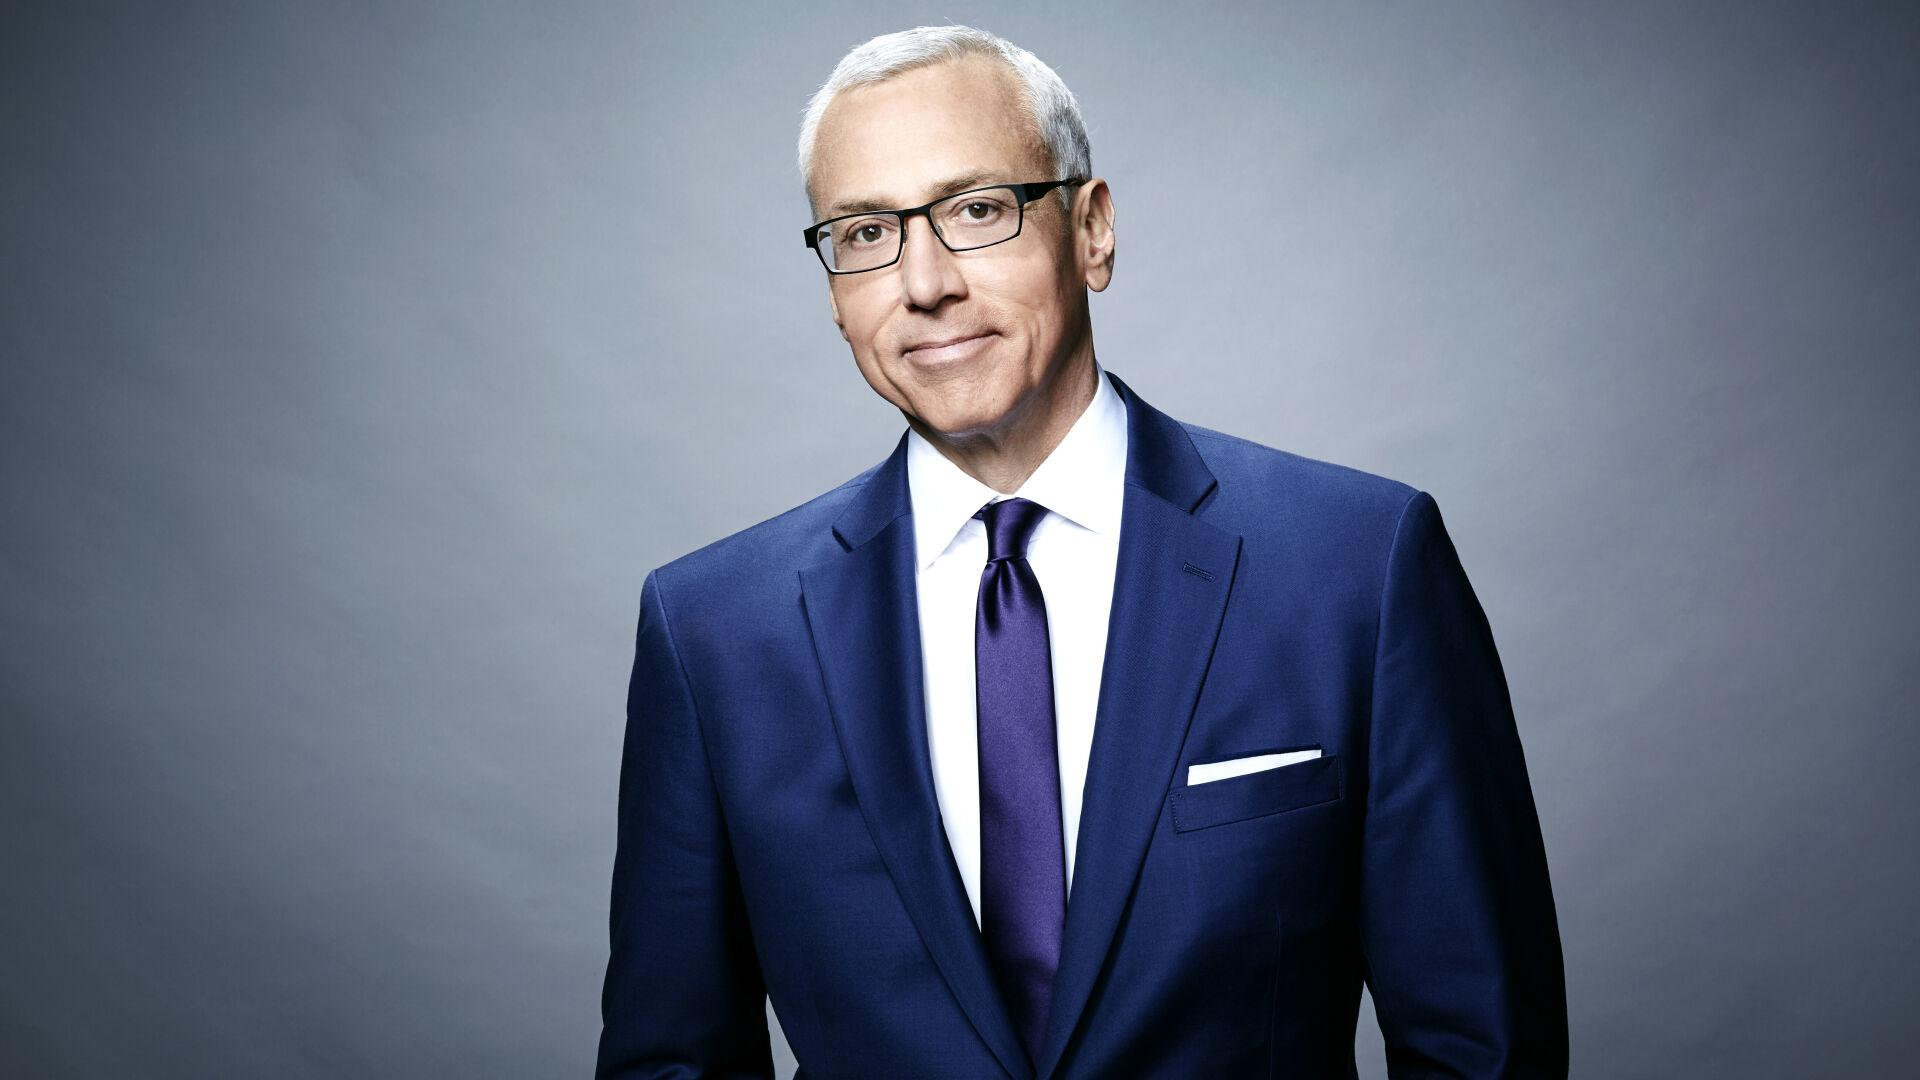 dr-drew-pinksy-argues-that-vaccination-passports-will-segregate-citizens-travelling-internationally-and-social-media-drags-him